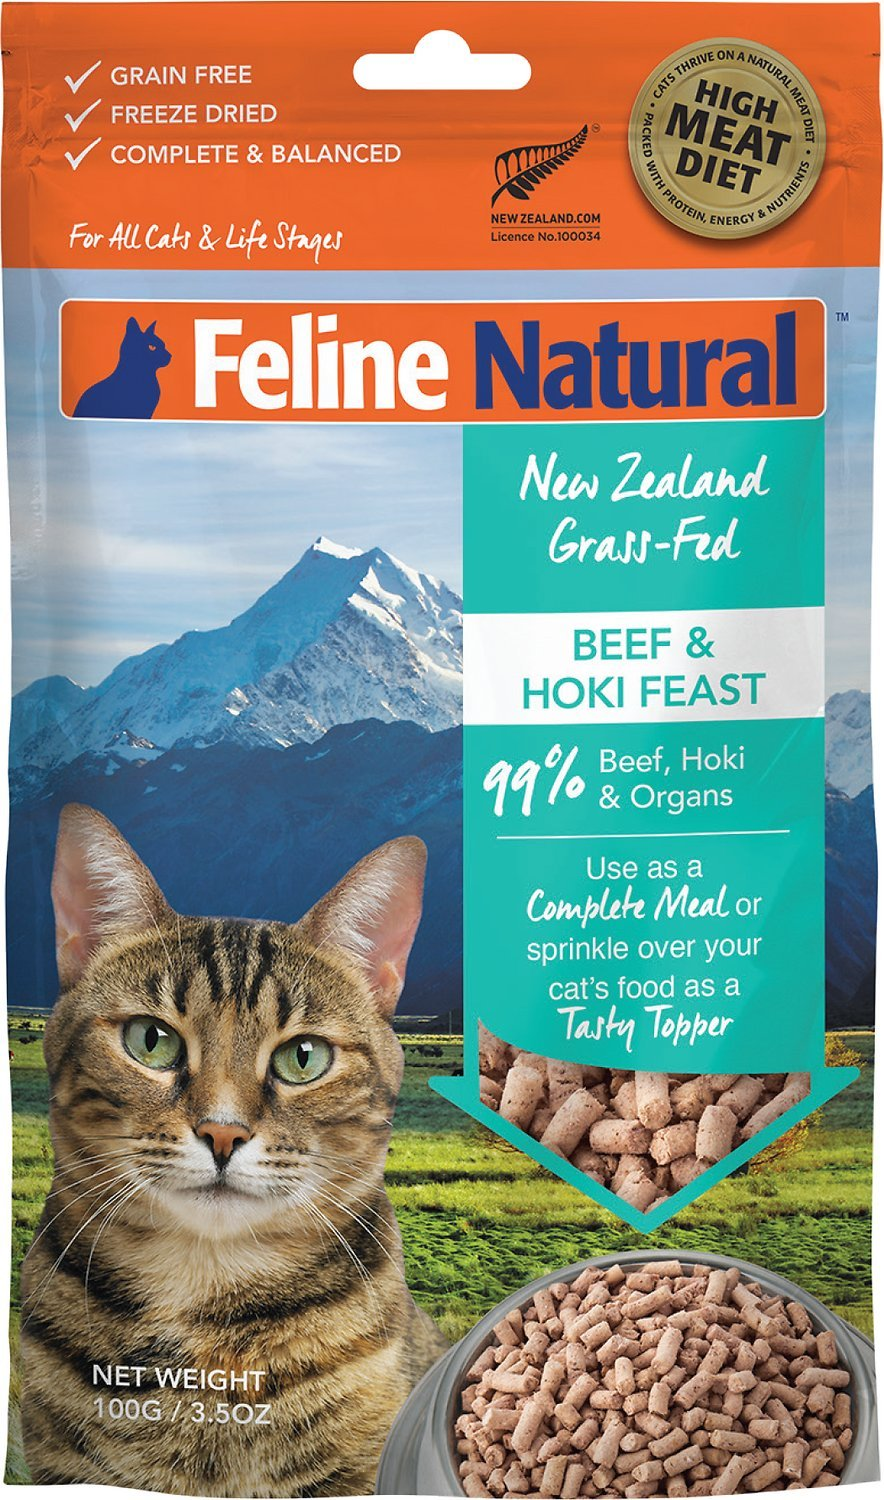 K9 Natural Feline Freeze-Dried Cat Food Beef & Hoki (Best Before date Feb 2021)